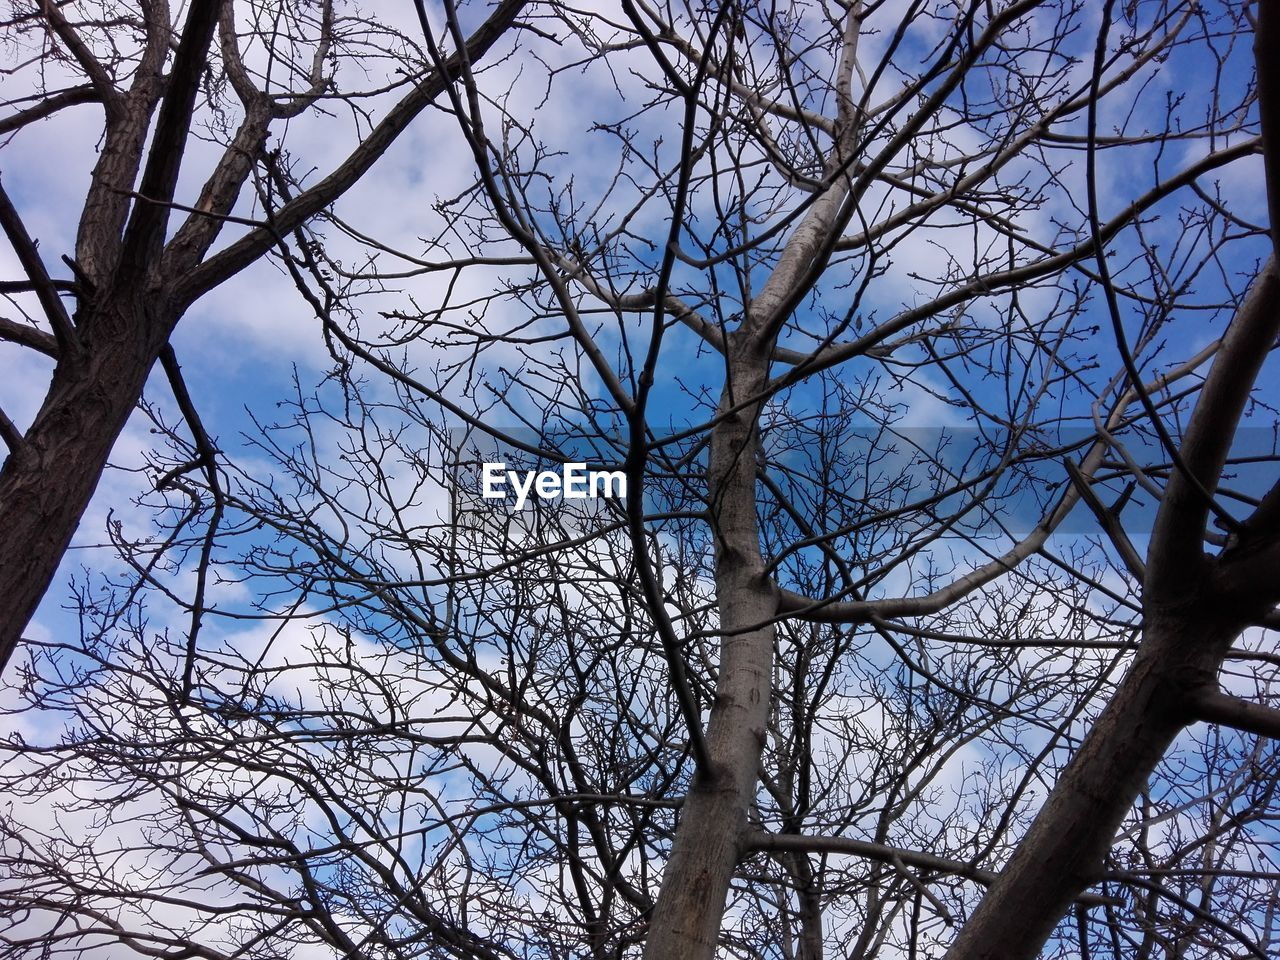 tree, branch, bare tree, low angle view, plant, sky, nature, day, no people, tranquility, trunk, tree trunk, outdoors, beauty in nature, forest, cloud - sky, land, growth, tranquil scene, non-urban scene, tree canopy